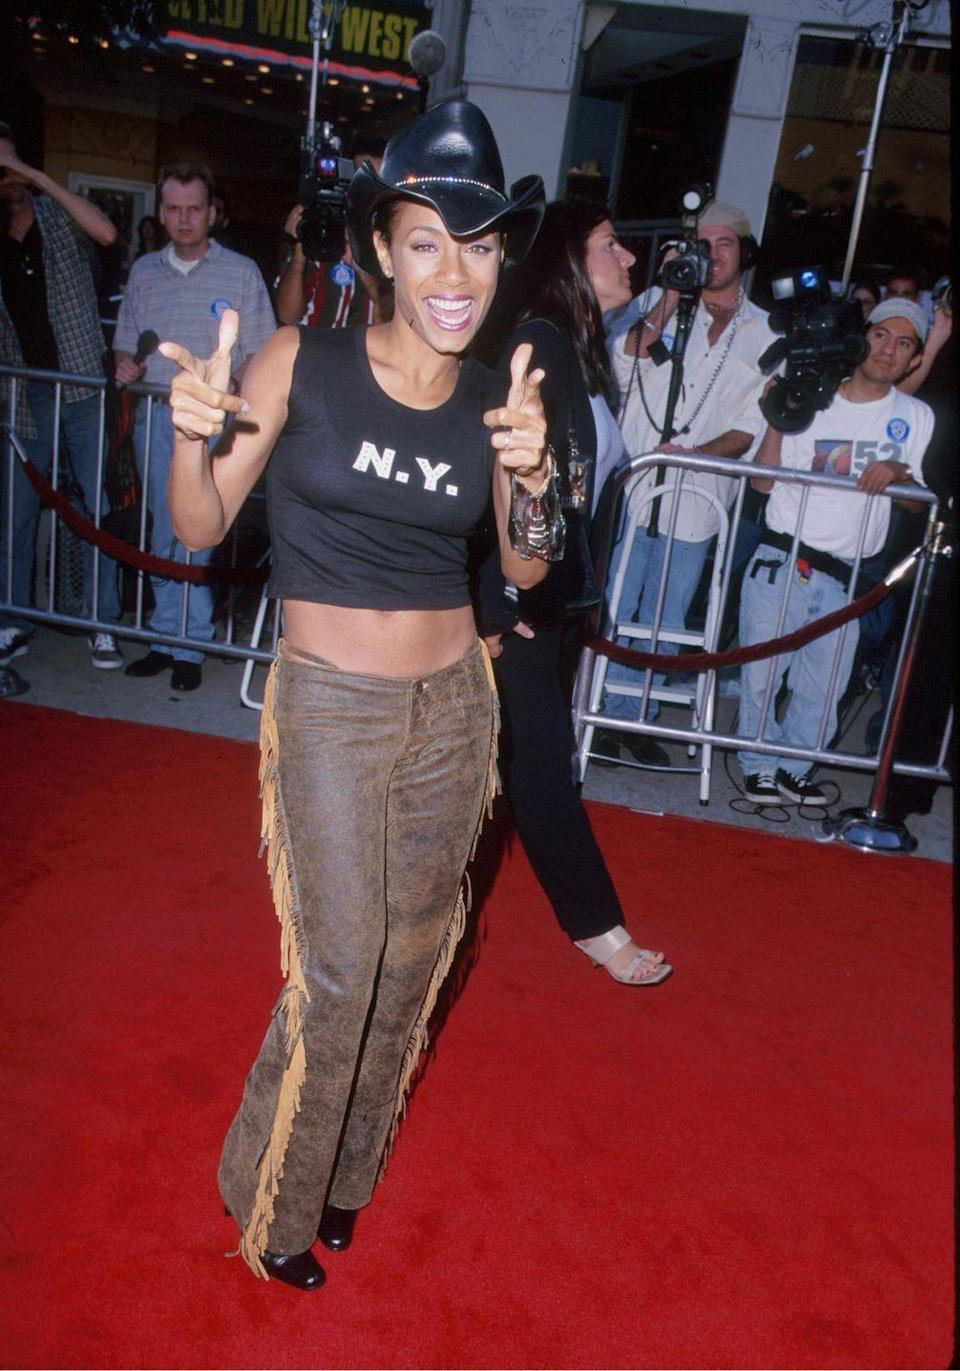 <p>To show her support for her husband Will Smith's <em>Wild Wild West</em> film, Jada showed up to the premiere decked out in fringed leather pants and a cowboy hat. Literally a *wild* outfit, amirite?!</p>